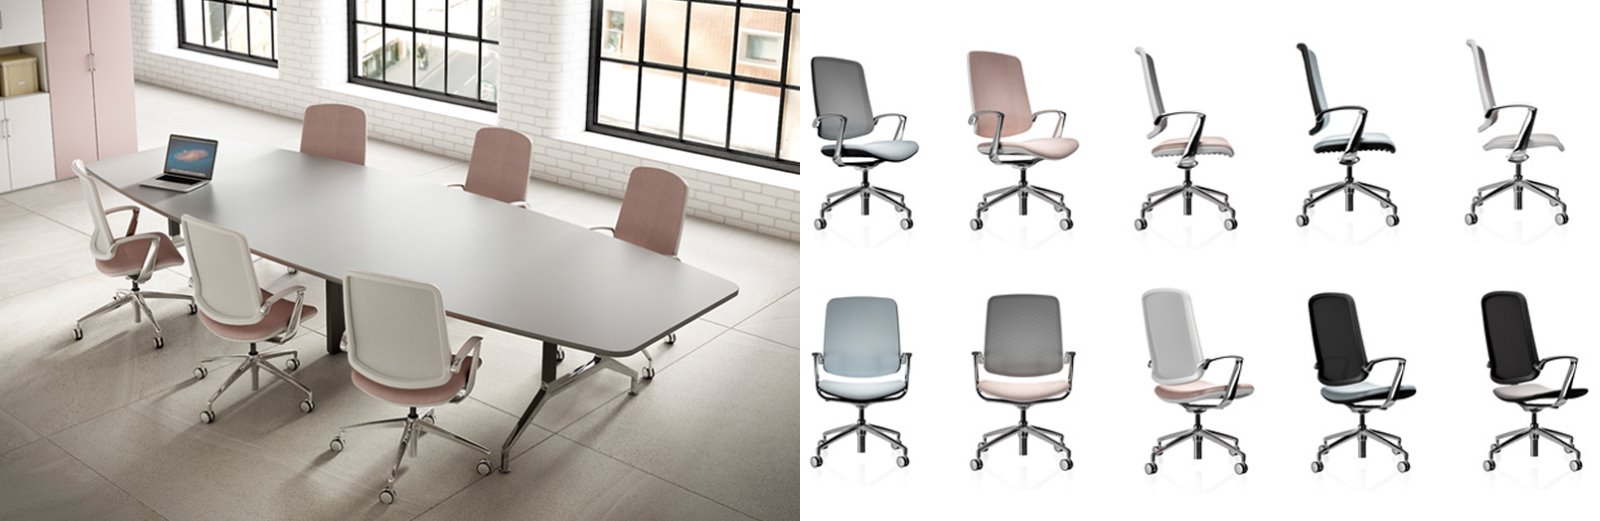 render CGI product cut outs office chairs